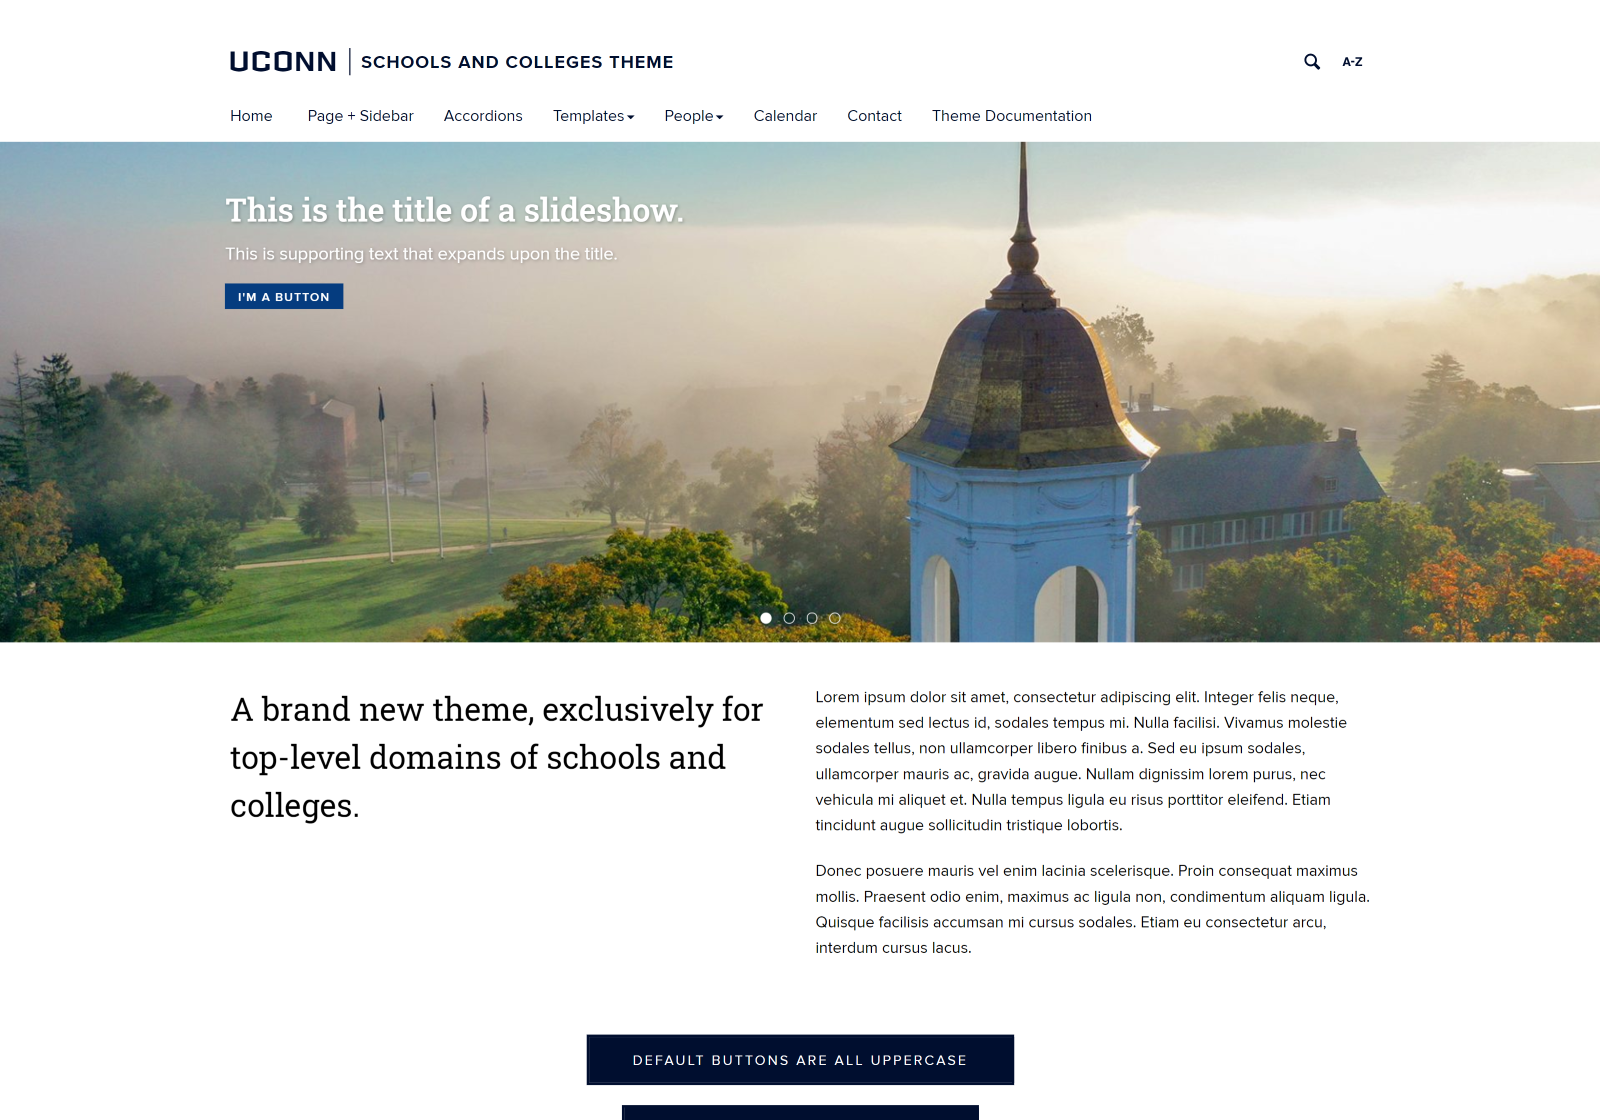 Desktop view of the UConn Schools and Colleges Template website